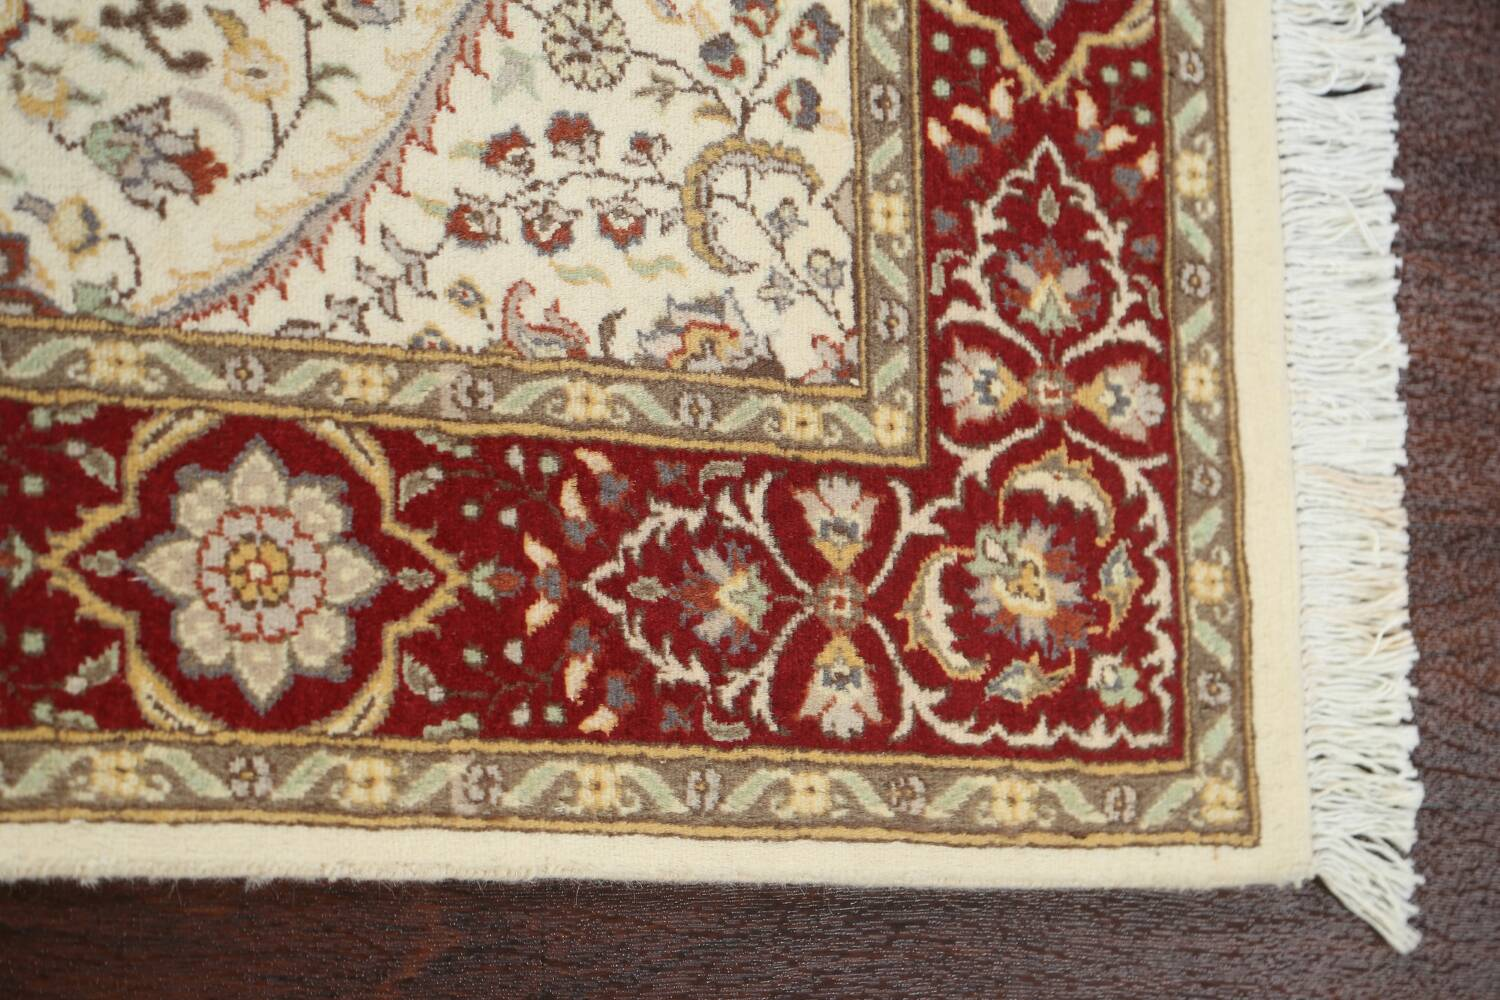 100% Vegetable Dye Floral Tabriz Oriental Area Rug 4x6 image 10